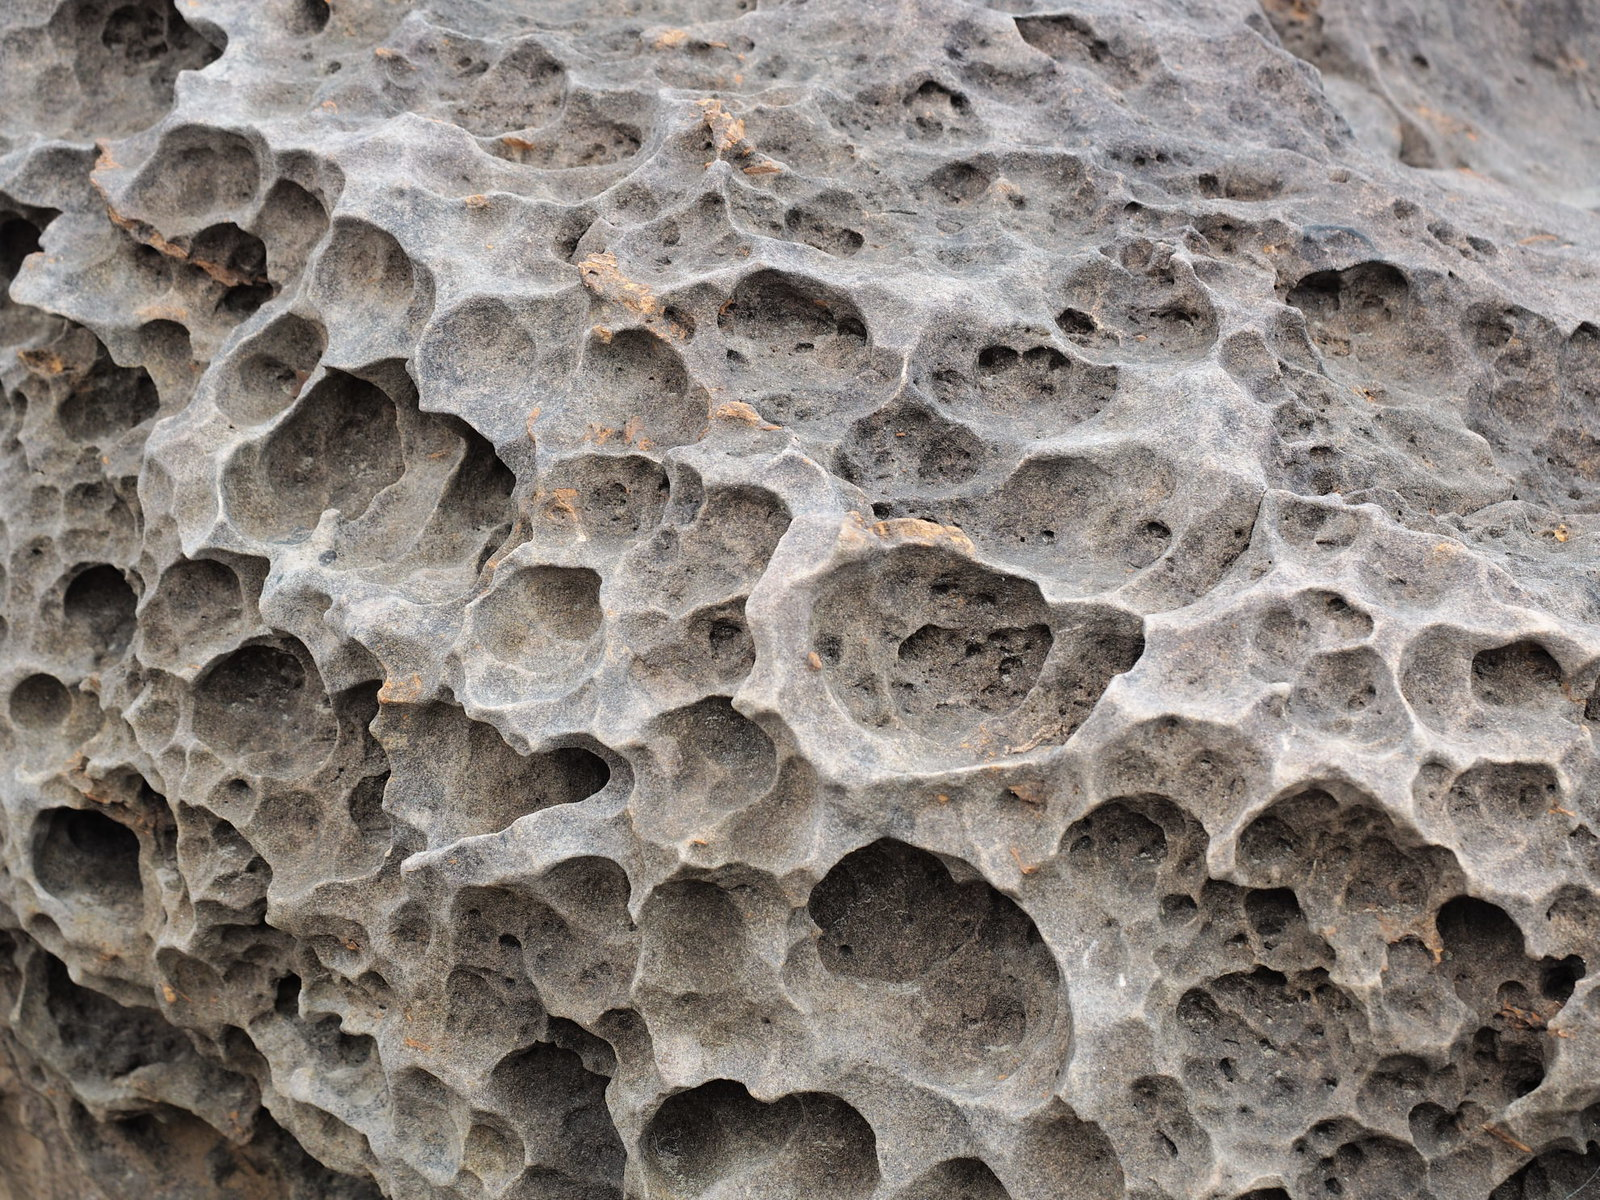 A closer look on the honeycomb-like on the rock at Yehliu Geopark